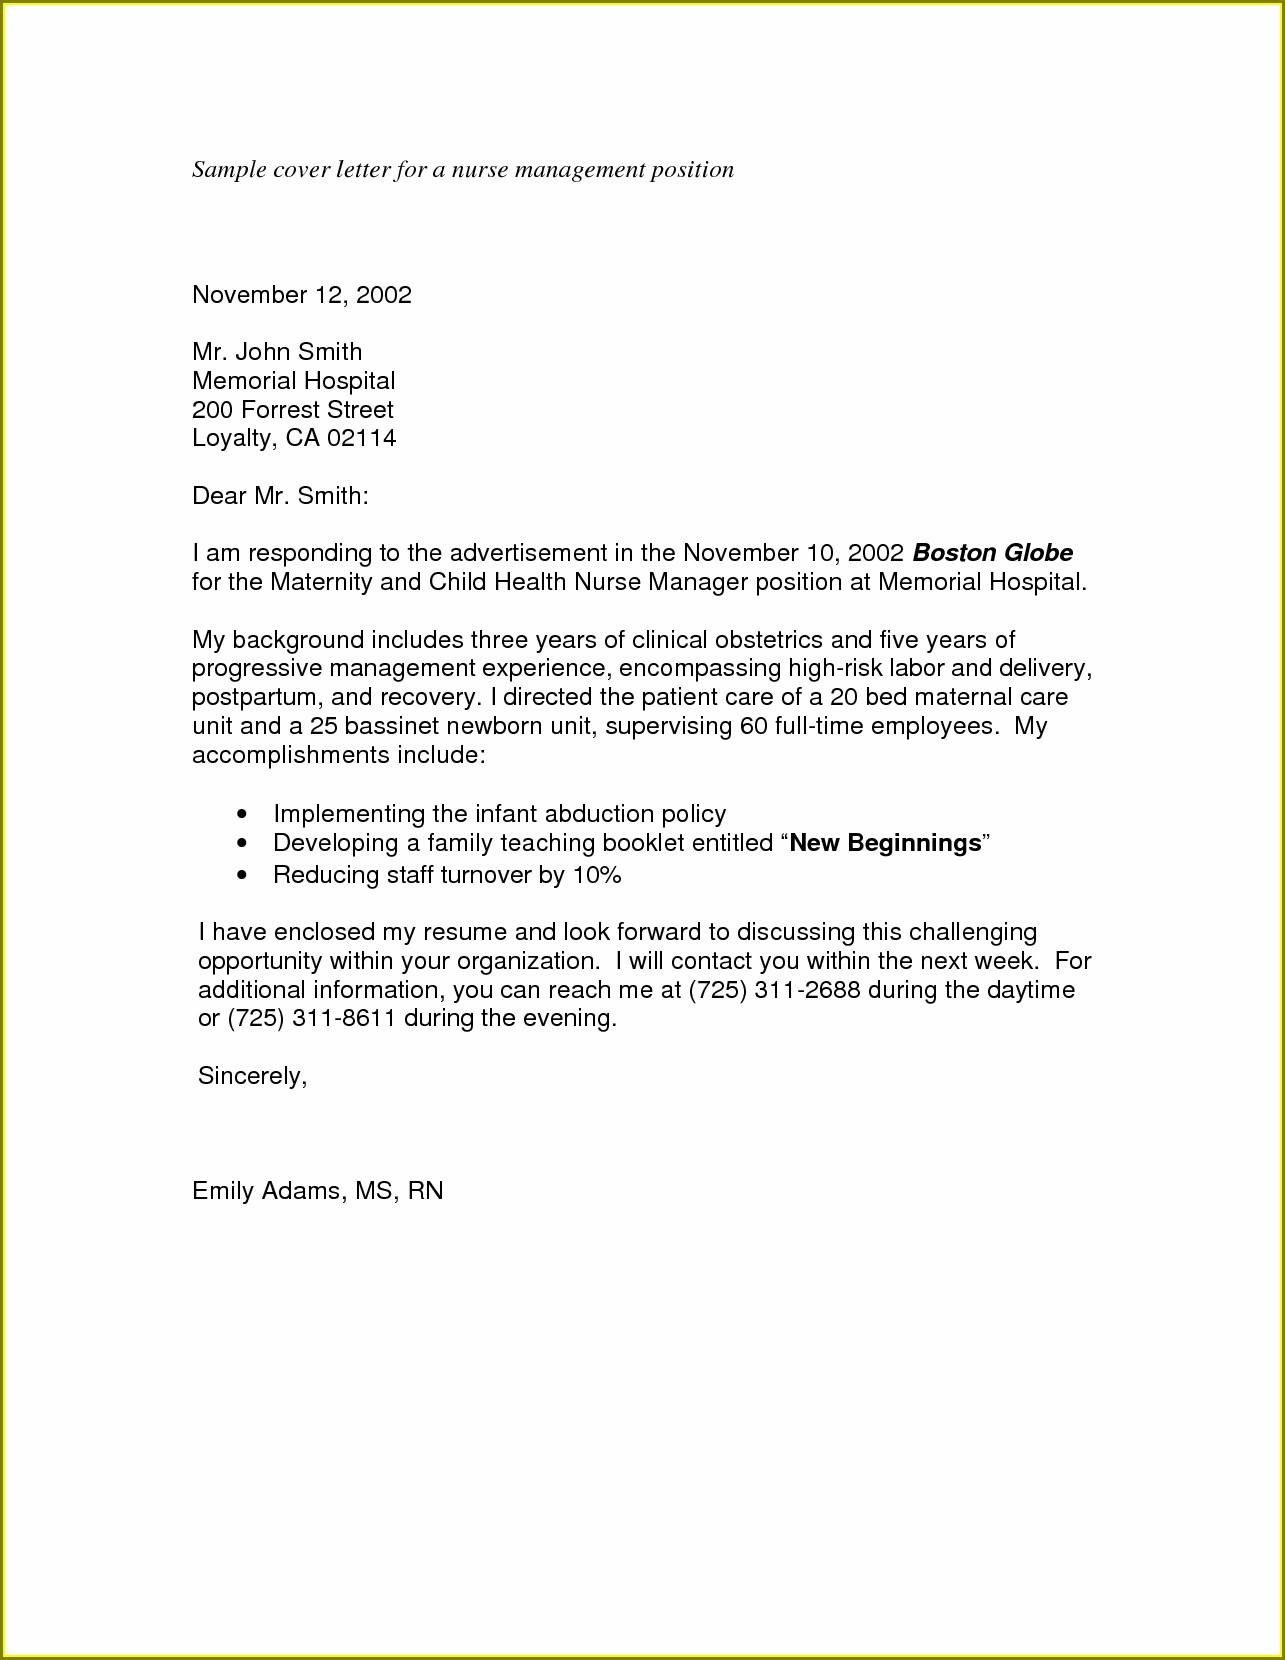 Sample Cover Letter For Nursing Job Application